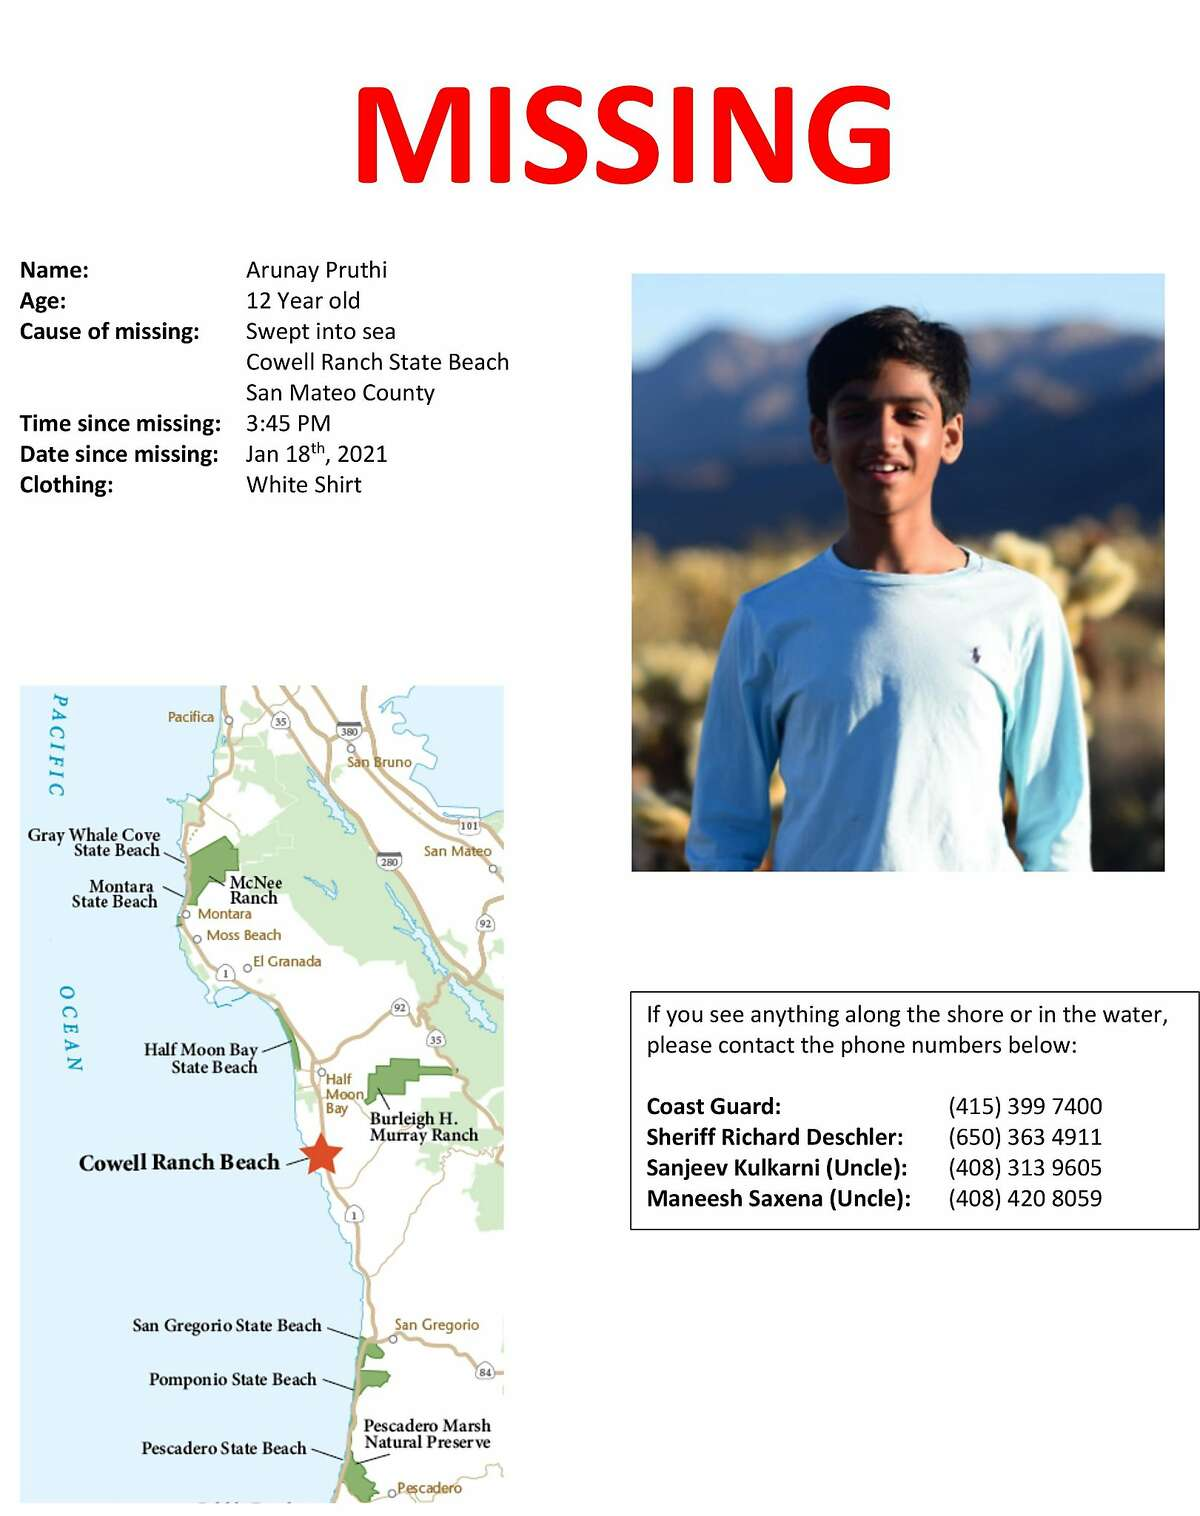 Poster for Arunay Pruthi, who went missing on January 18